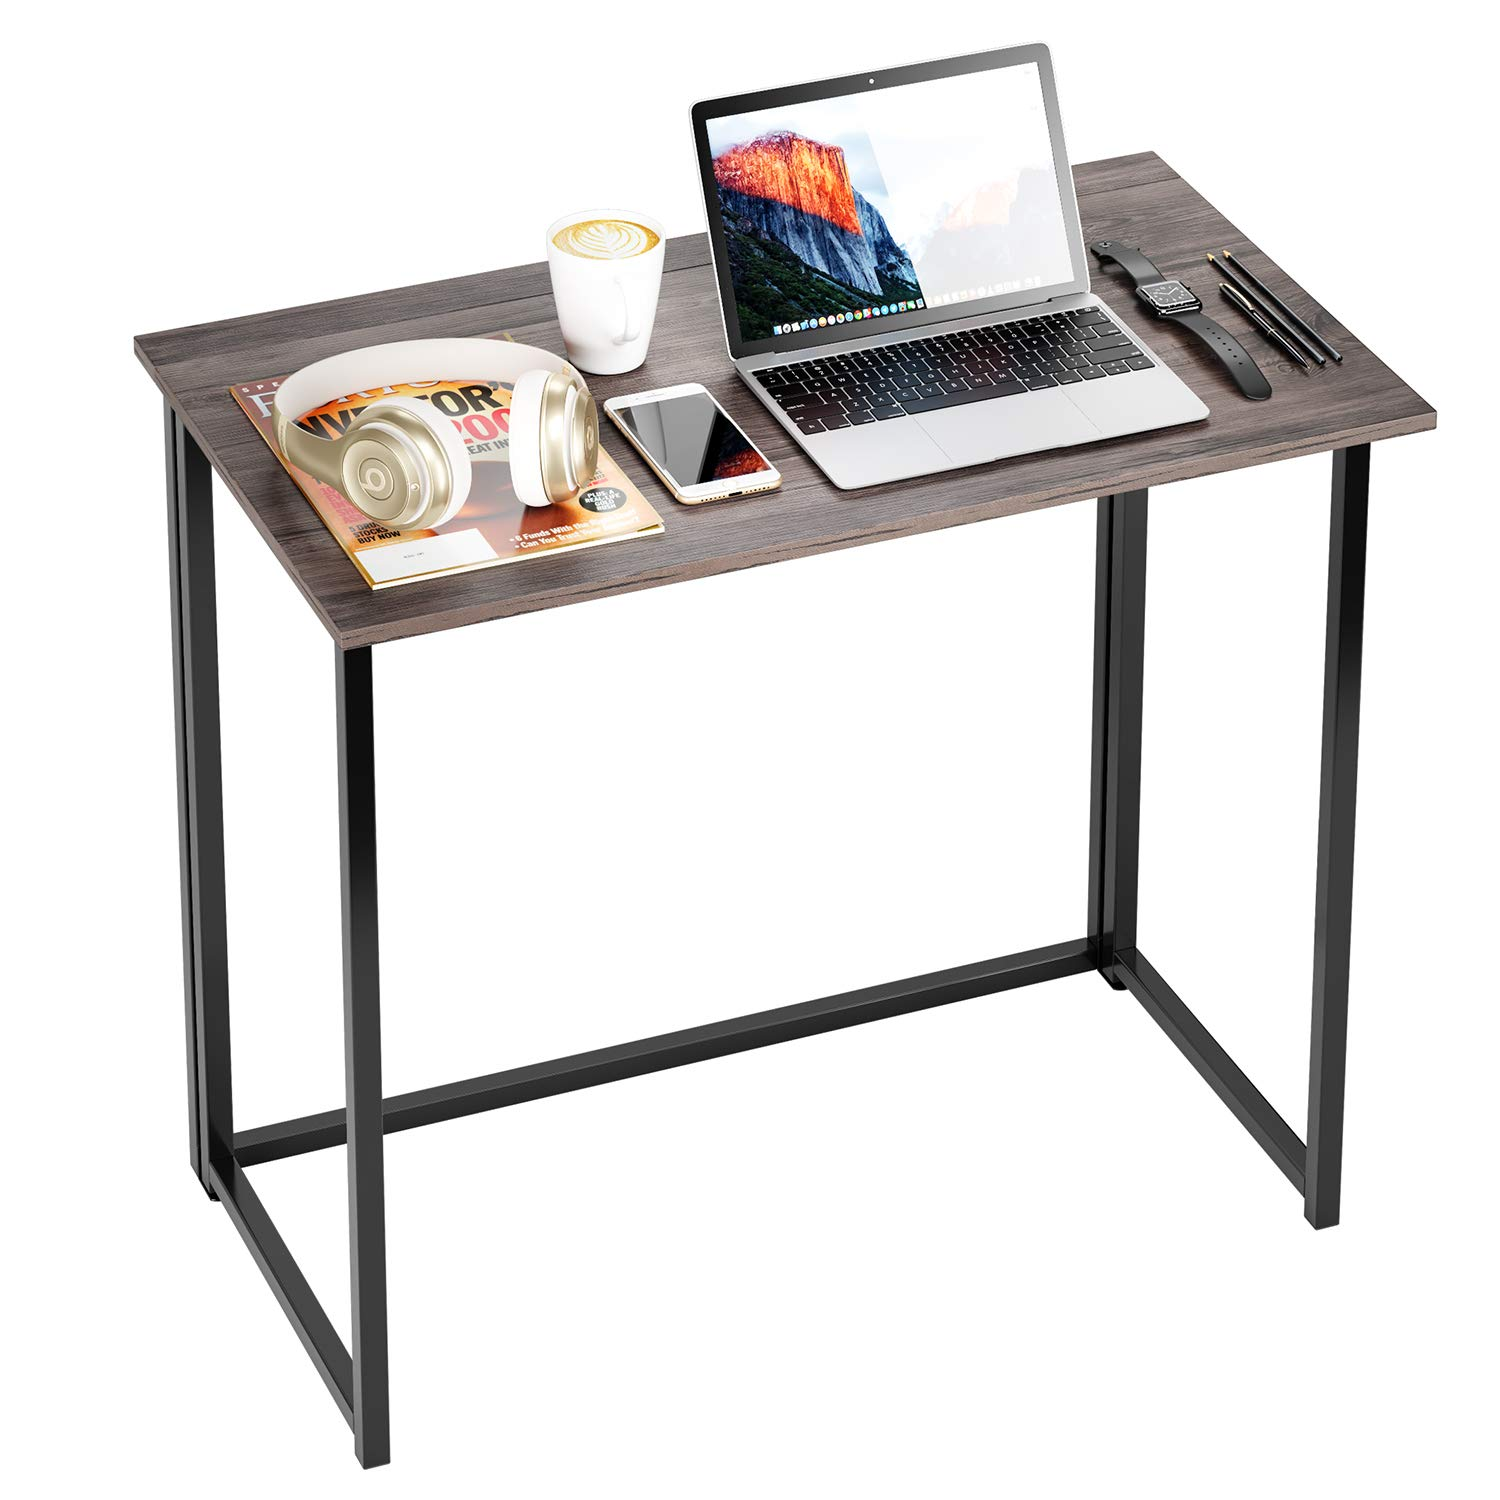 HOMFA Folding Laptop Table, Writing Computer Notebook Desk, Modern Simple Industrial Style TV Tray Bed/Sofa Side Study Table, Space Saving Furniture for Home Office by Homfa (Image #5)